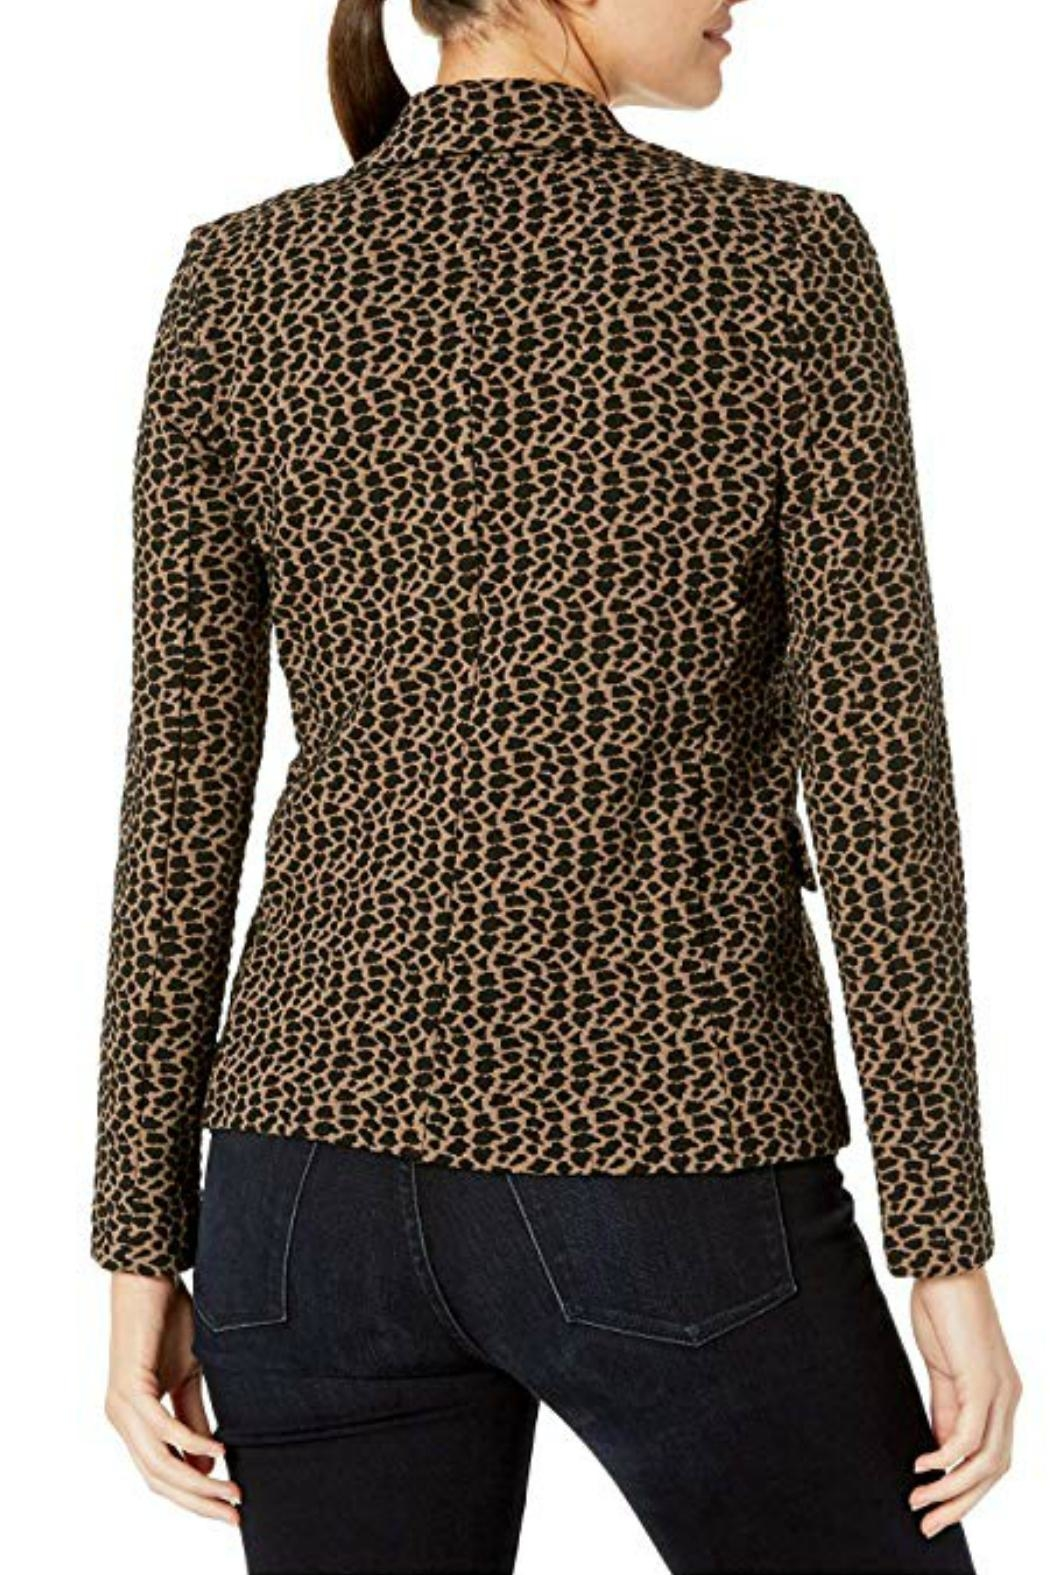 Elliott Lauren Animal Print Jacket - Back Cropped Image